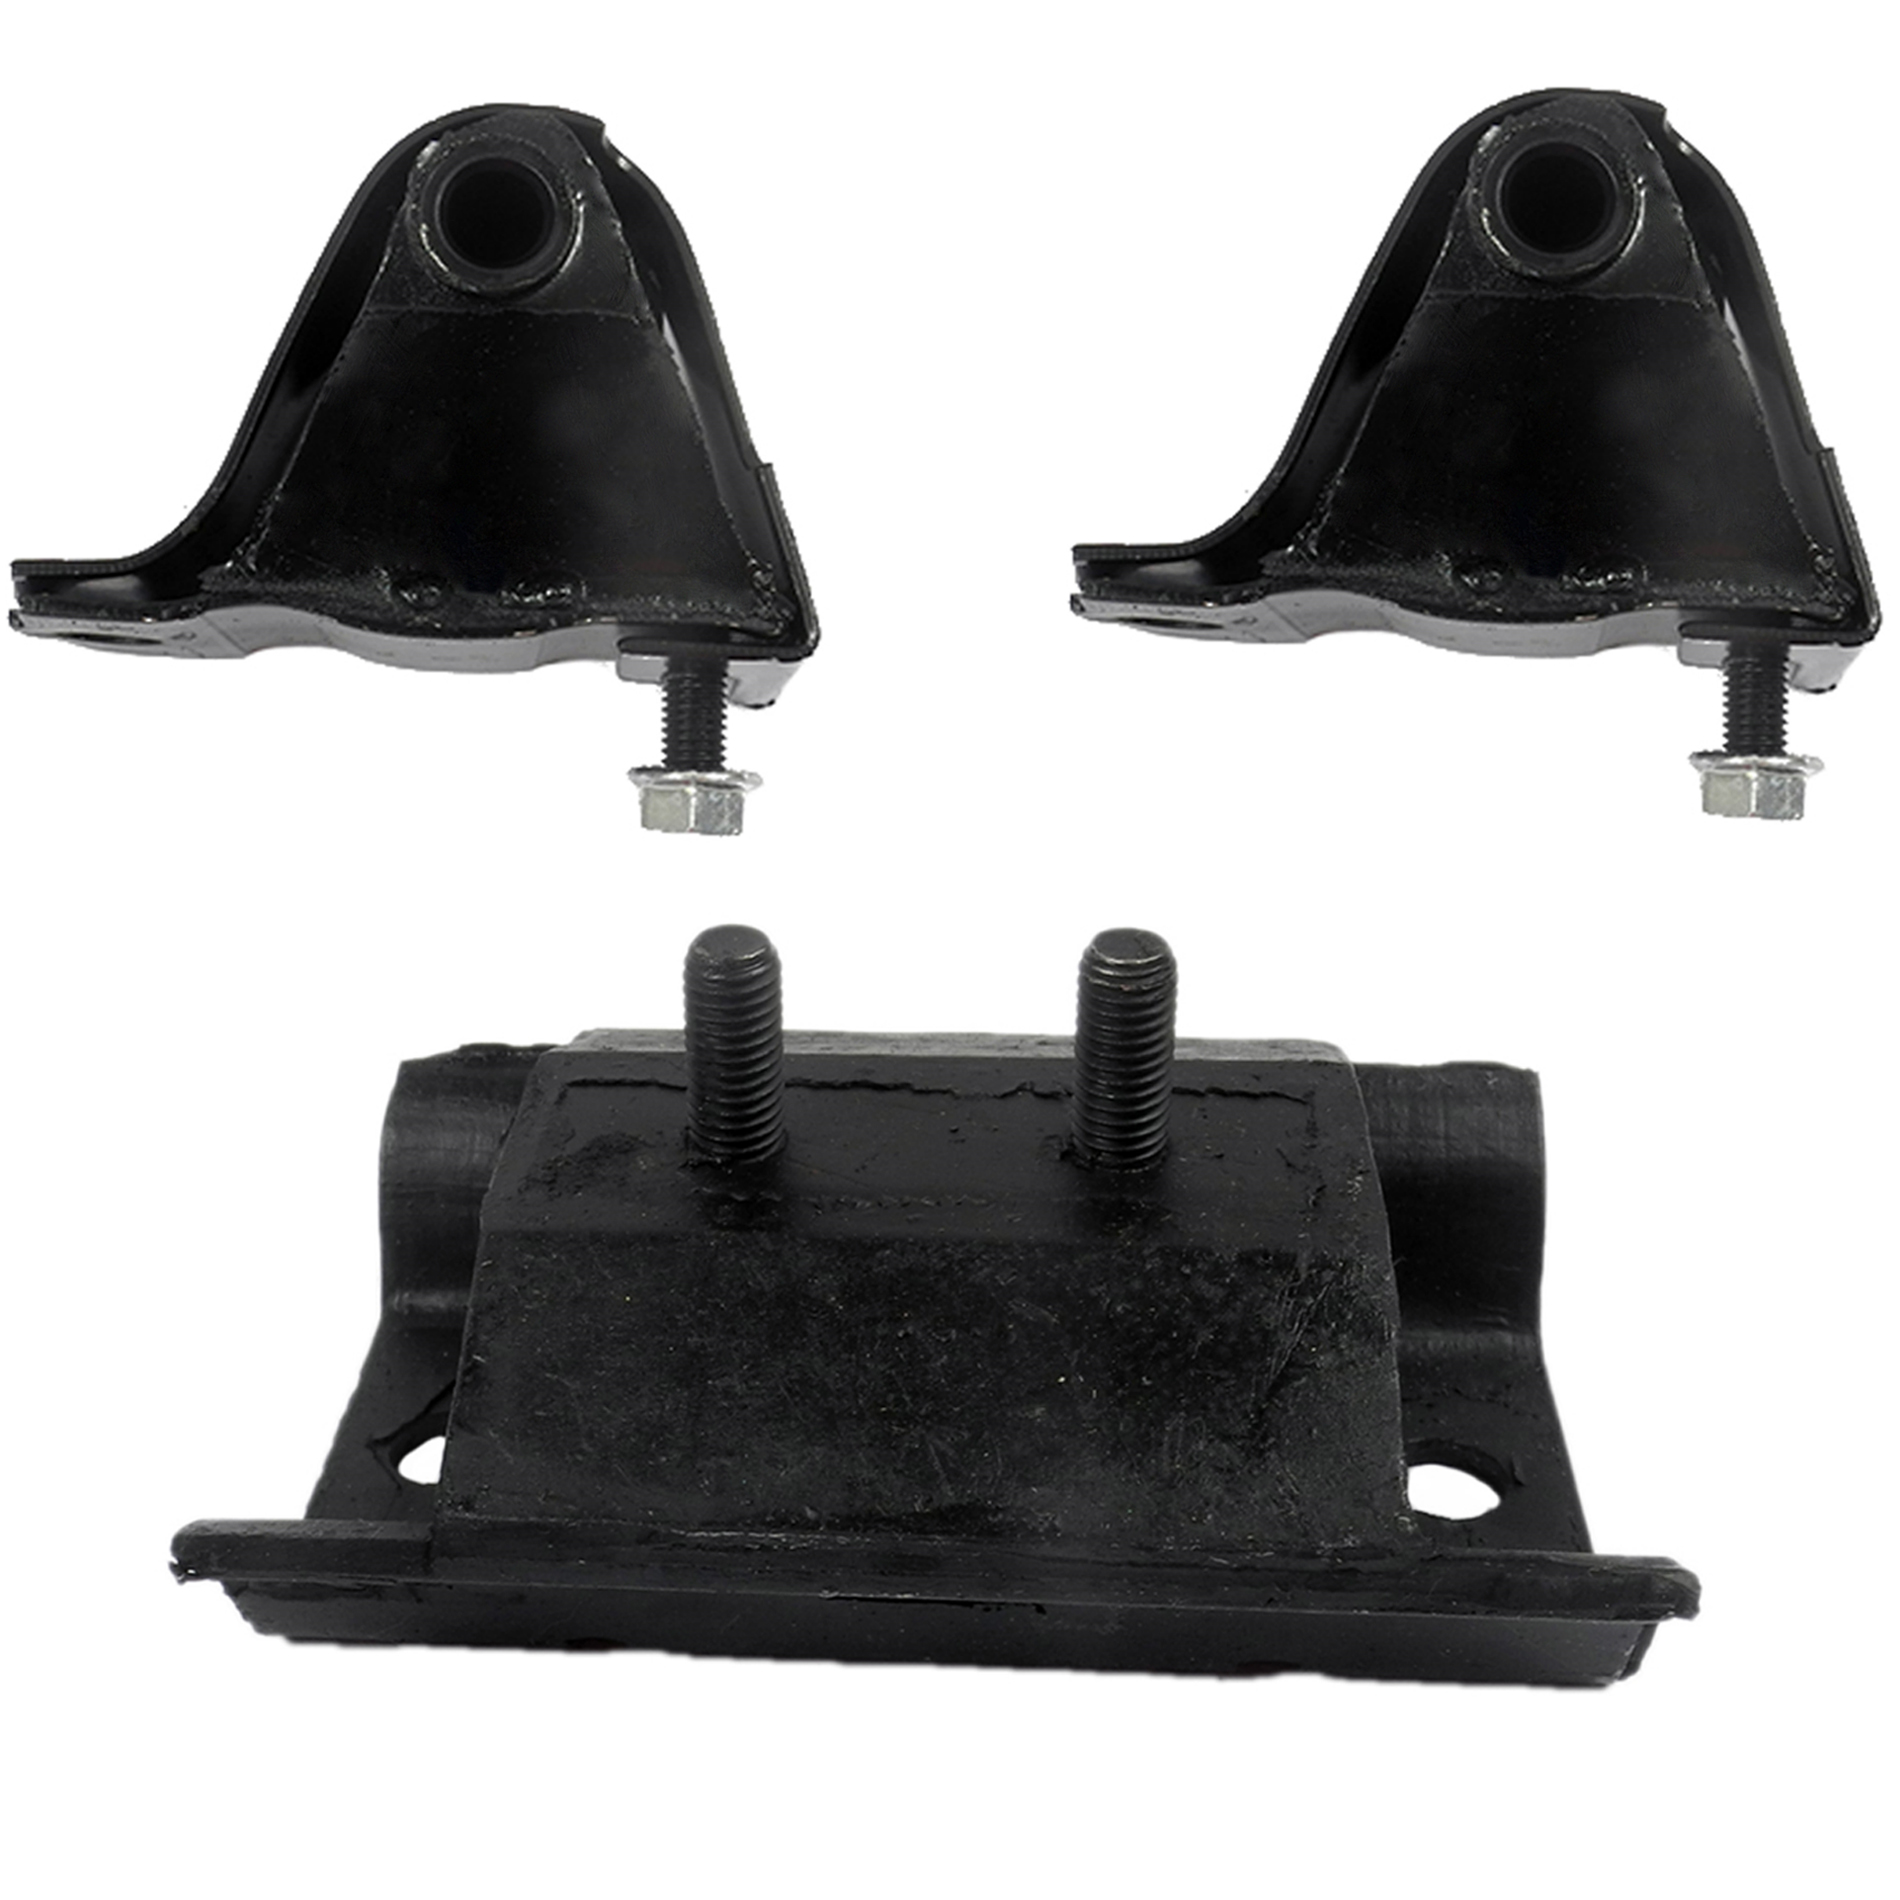 Motor /& Trans Mount 3PCS Set for 1987-1999 Jeep Cherokee// Comanche//Wagoneer 4.0L